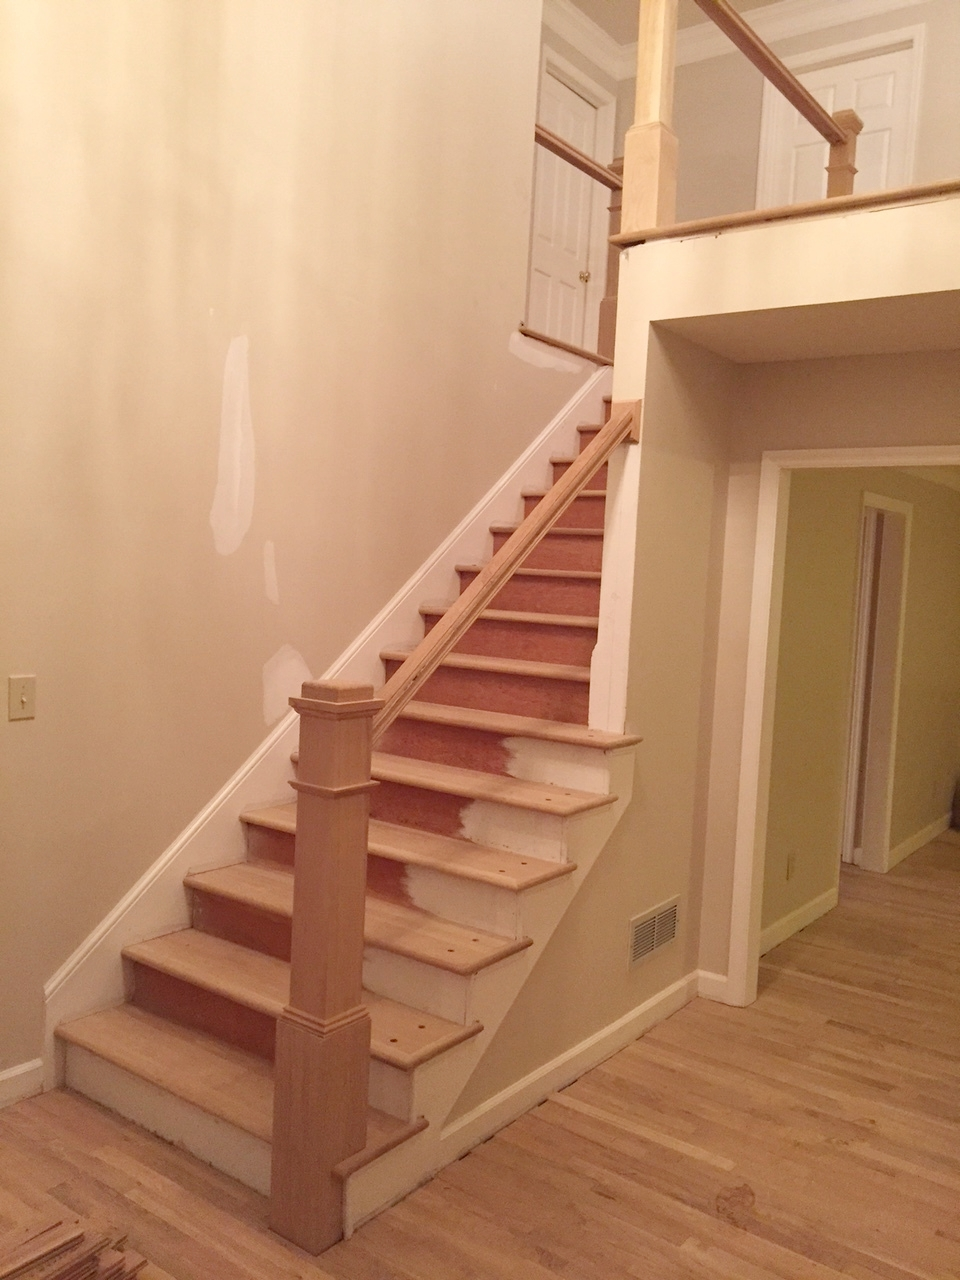 The old newel post was just too small for this tall and long entryway. By increasing the scale and replacing the treads with beautiful hardwoods, the staircase becomes a focal point not just a means of transportation.